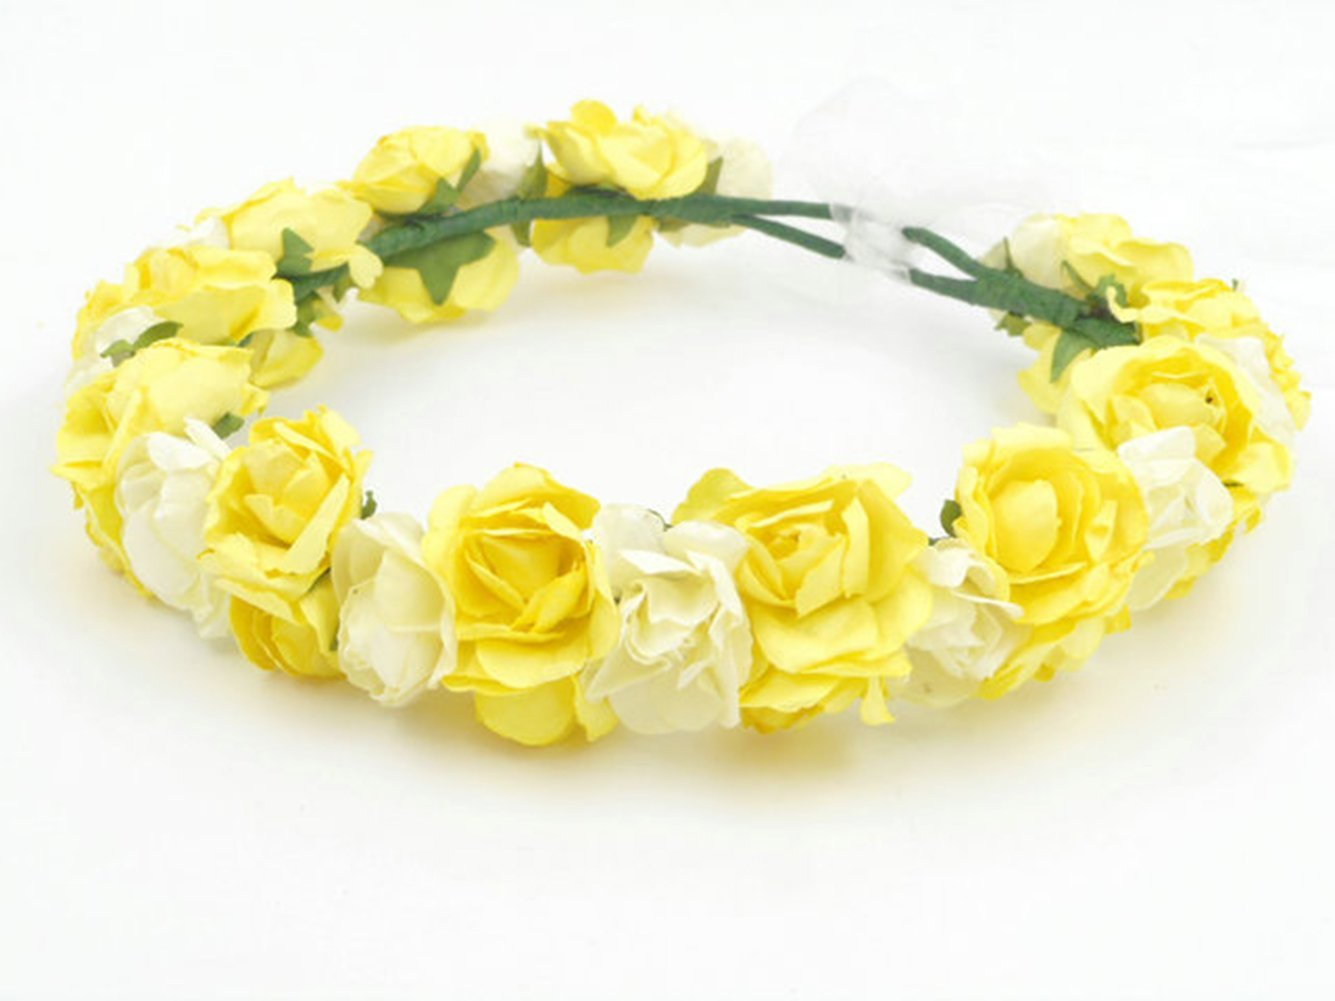 Cheap yellow flower paper find yellow flower paper deals on line at get quotations fairy beach hawaiian paper flowers tiara crown headband for flower girl wedding headwear hair decorations holiday izmirmasajfo